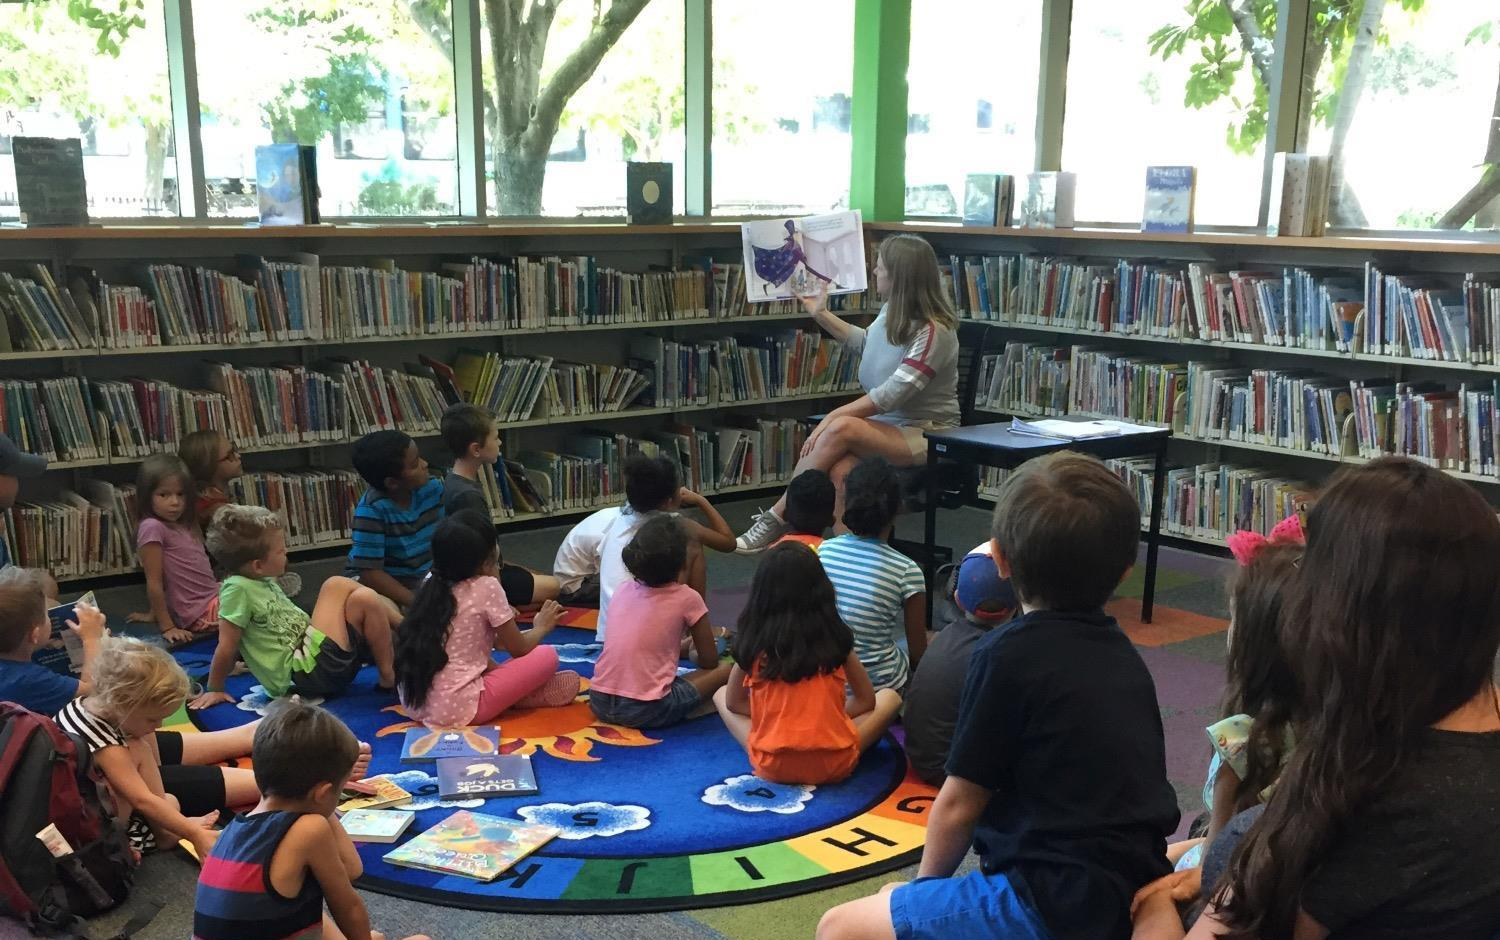 Teacher reading to kids at library